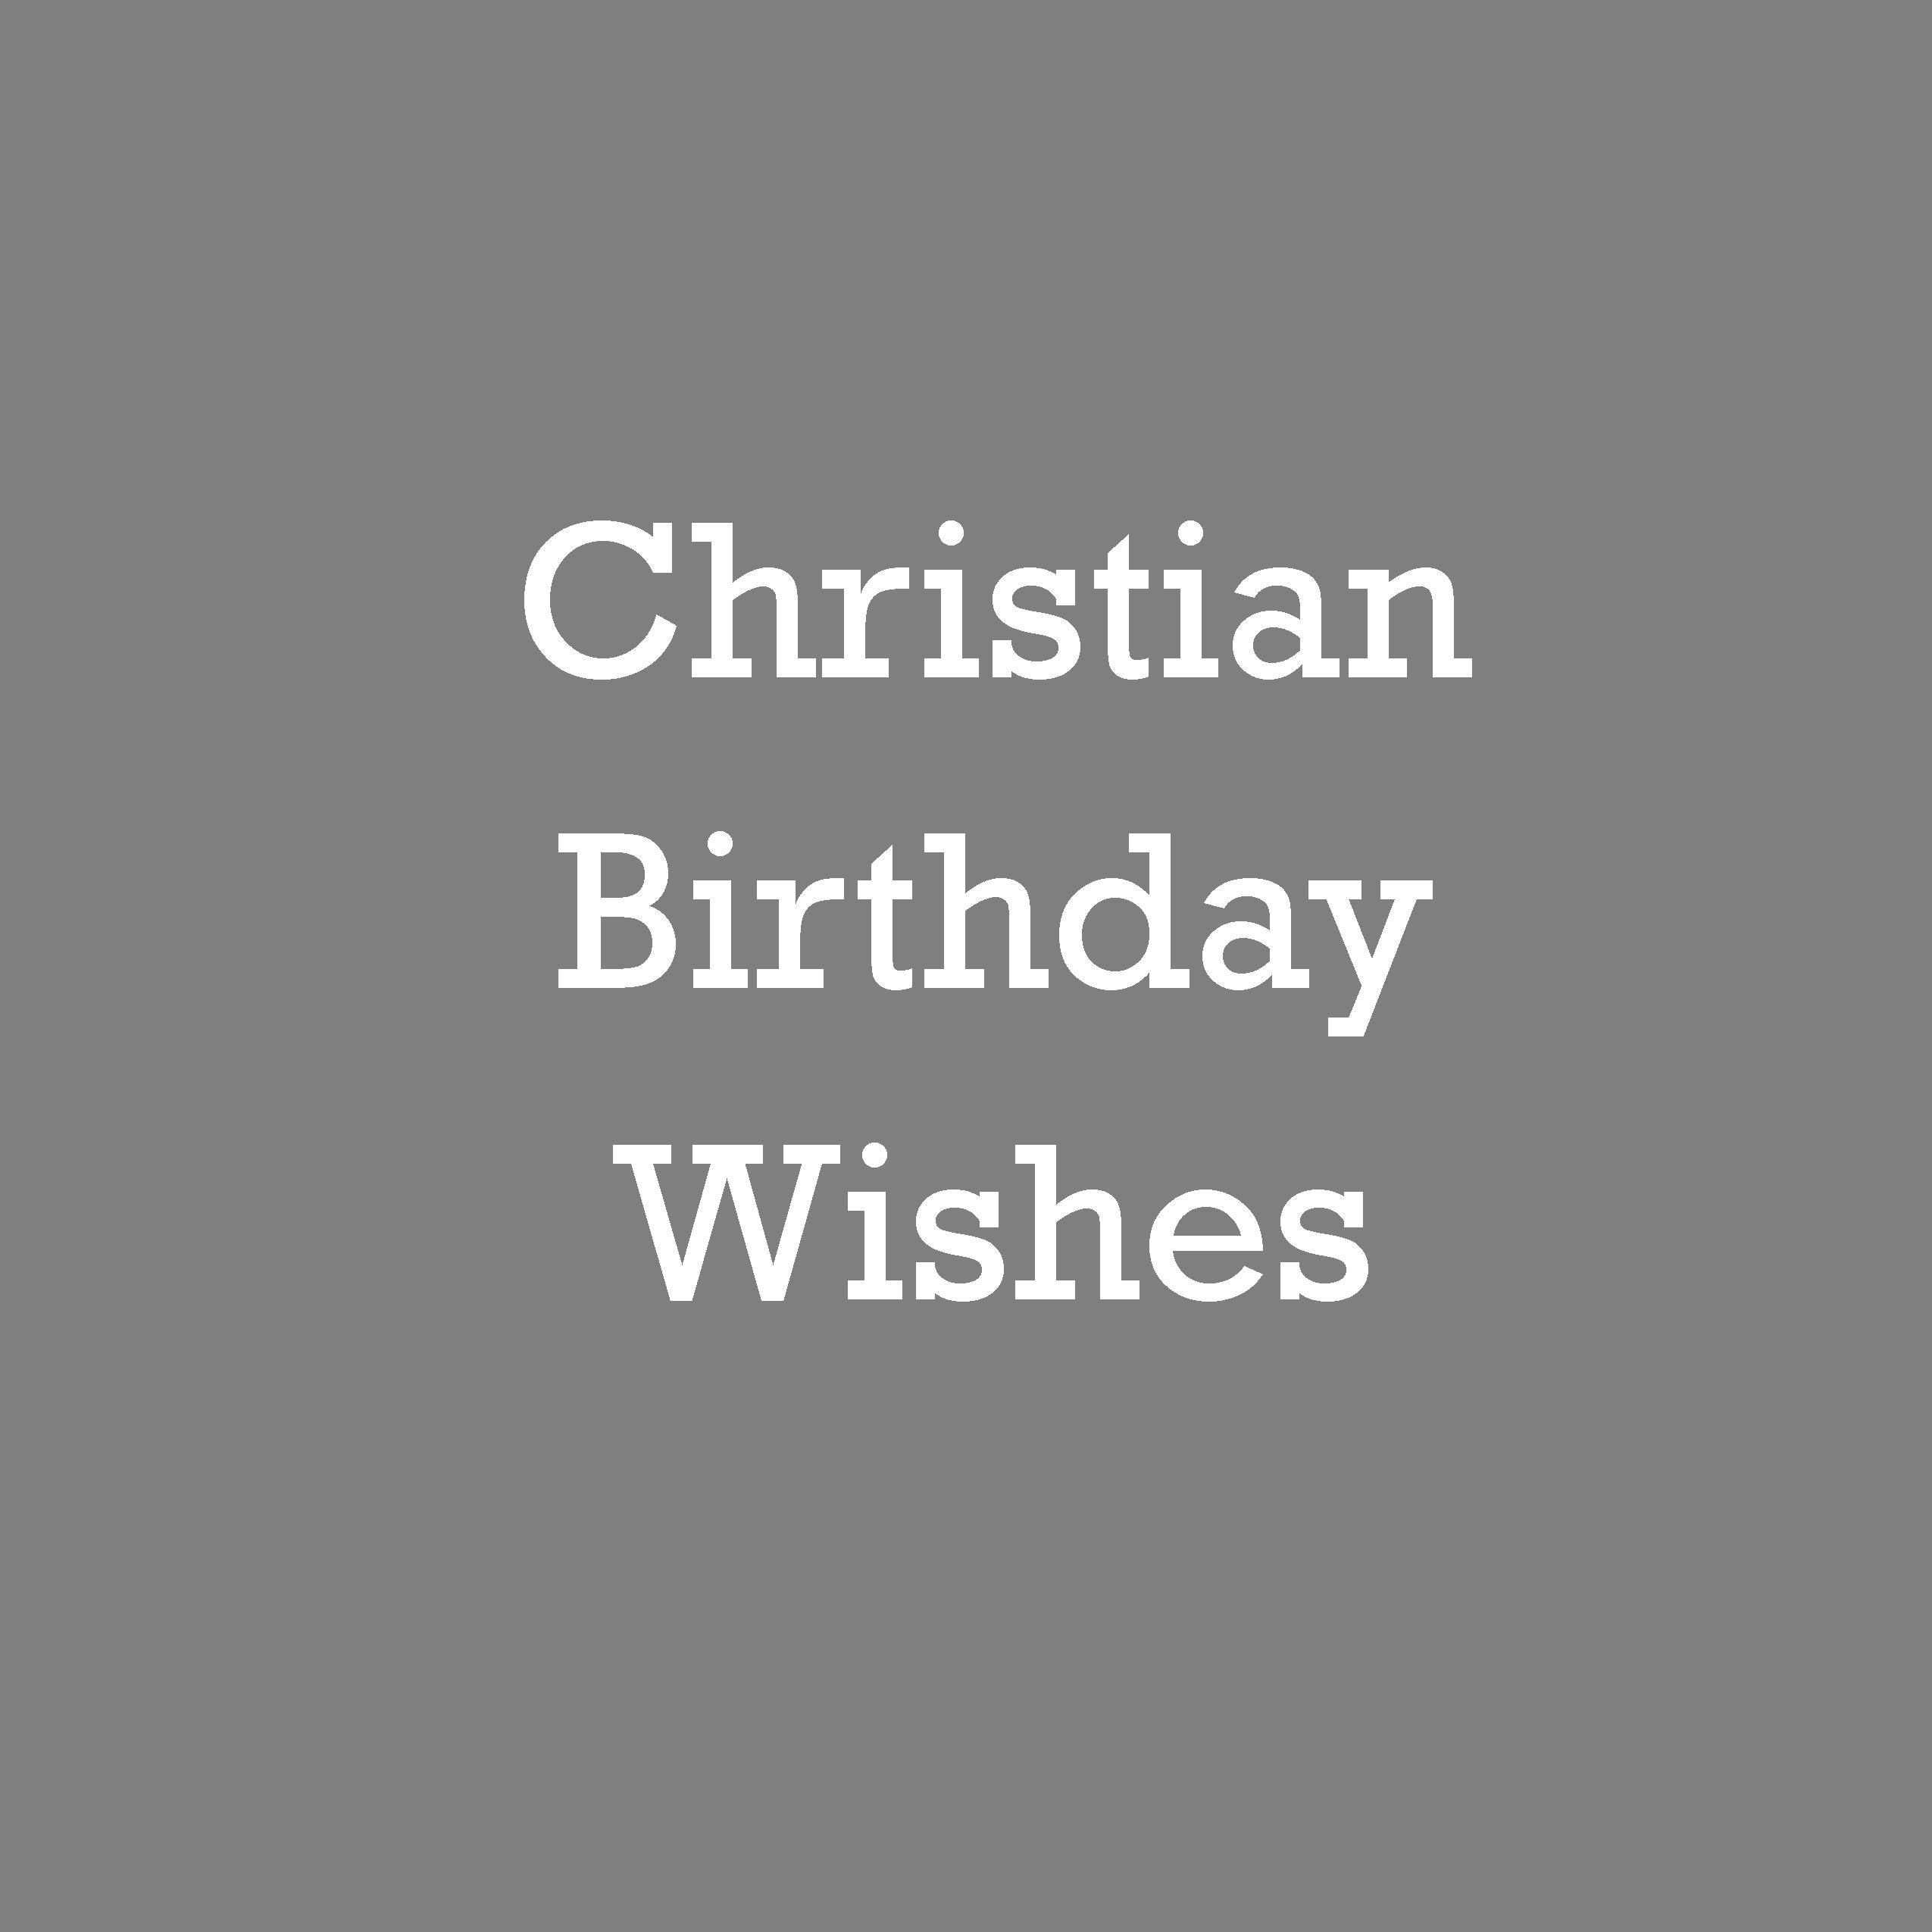 Inspirational Birthday Quotes And Sayings: Inspirational Birthday Quotes. QuotesGram